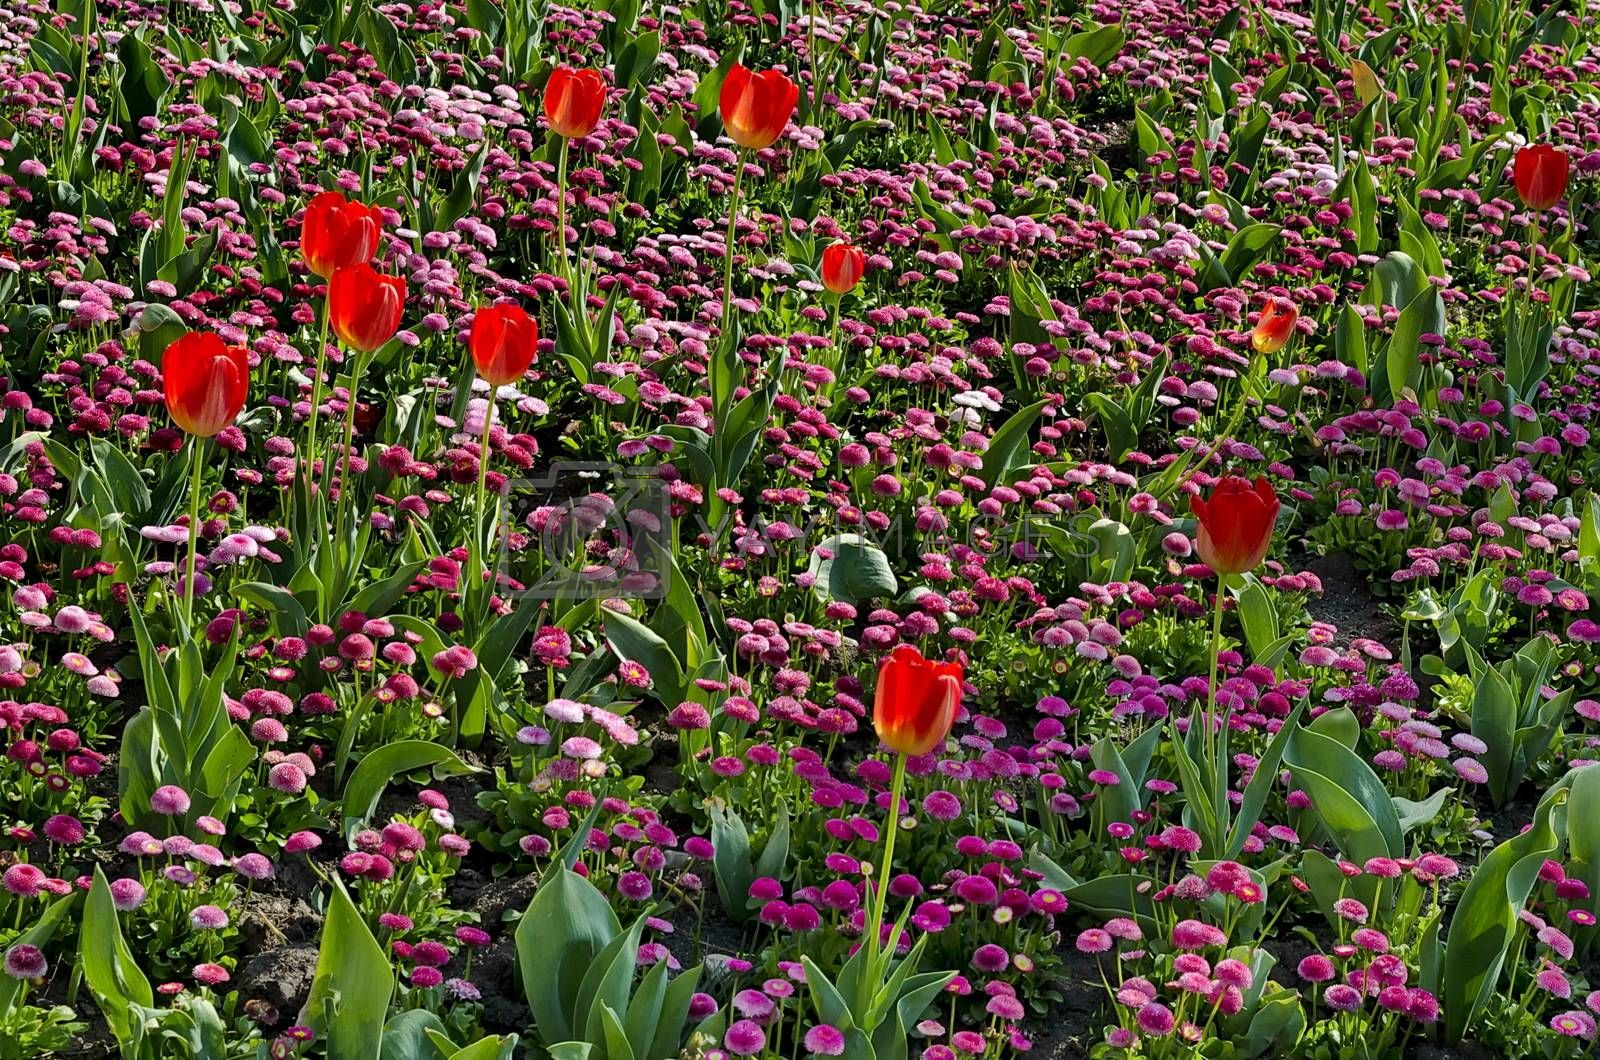 Springtime garden with pink daisies and red tulips in bloom, Sofia, Bulgaria